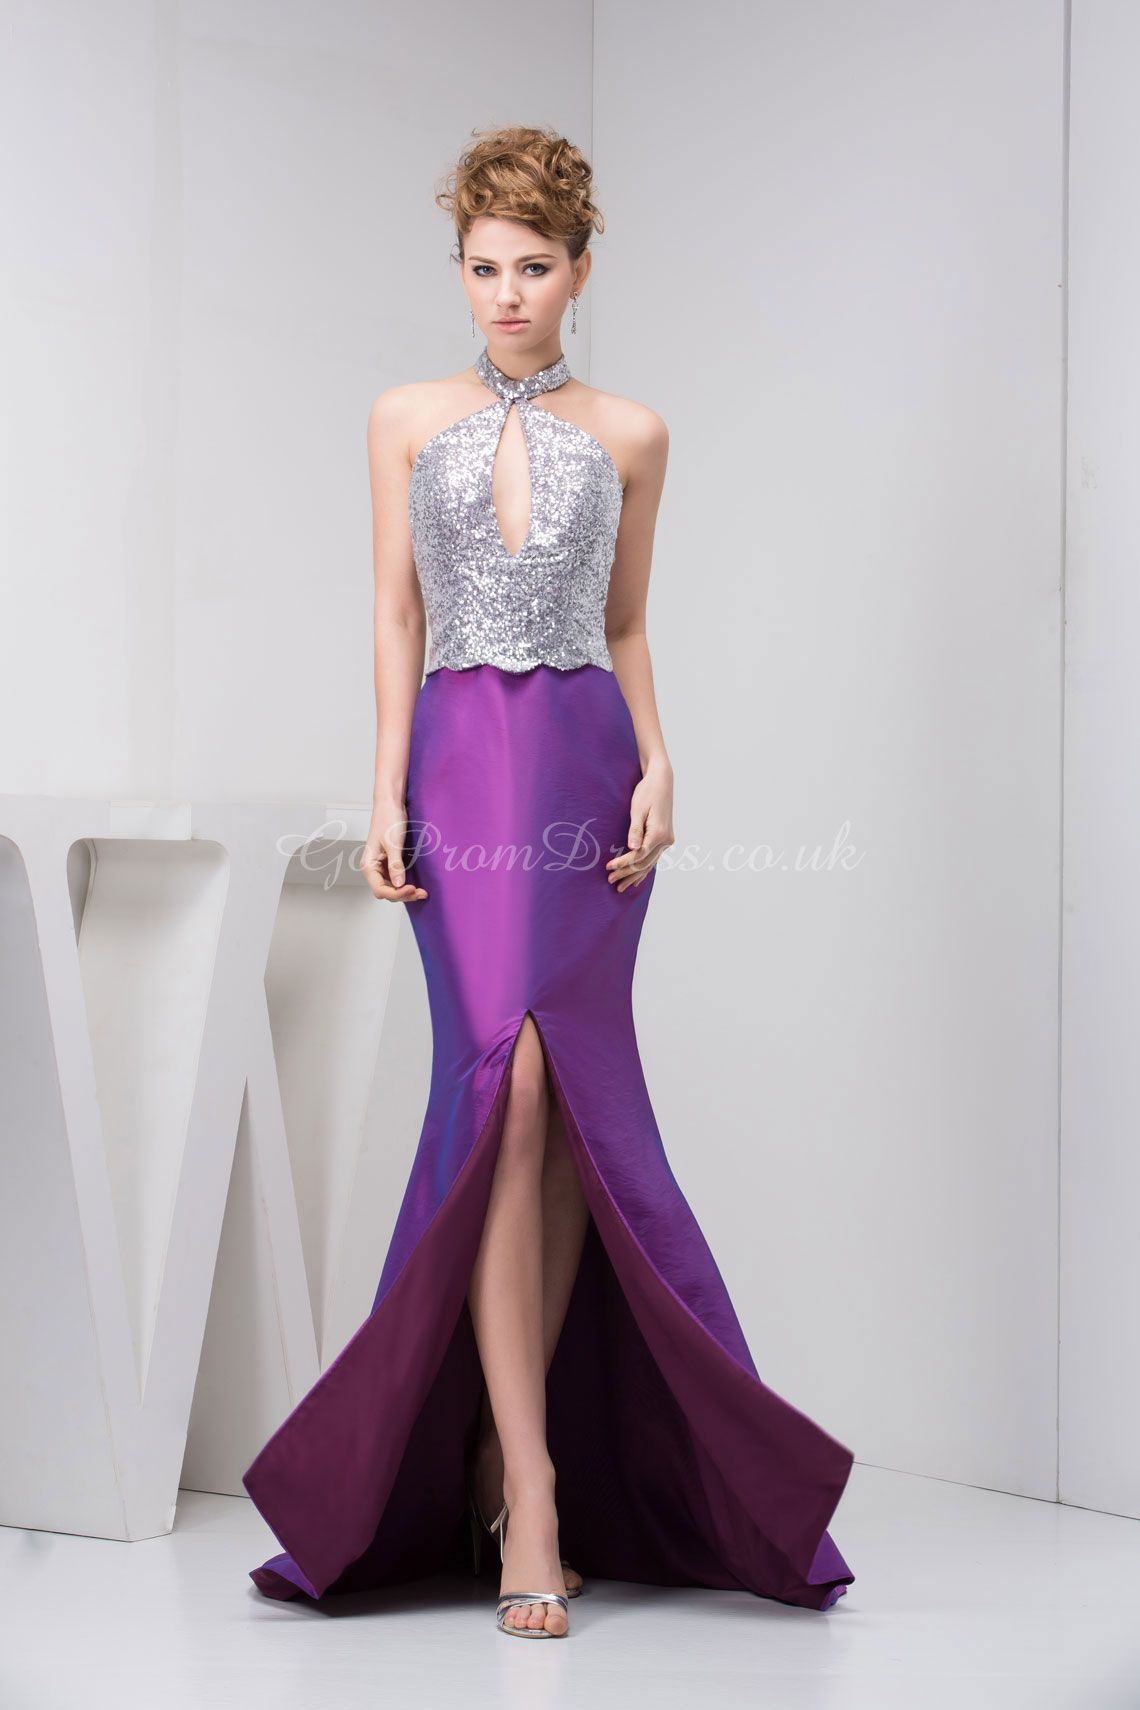 Wedding dress short in front with long train  prom dressprom dressesprom dressprom dresses mermaidtrumpet